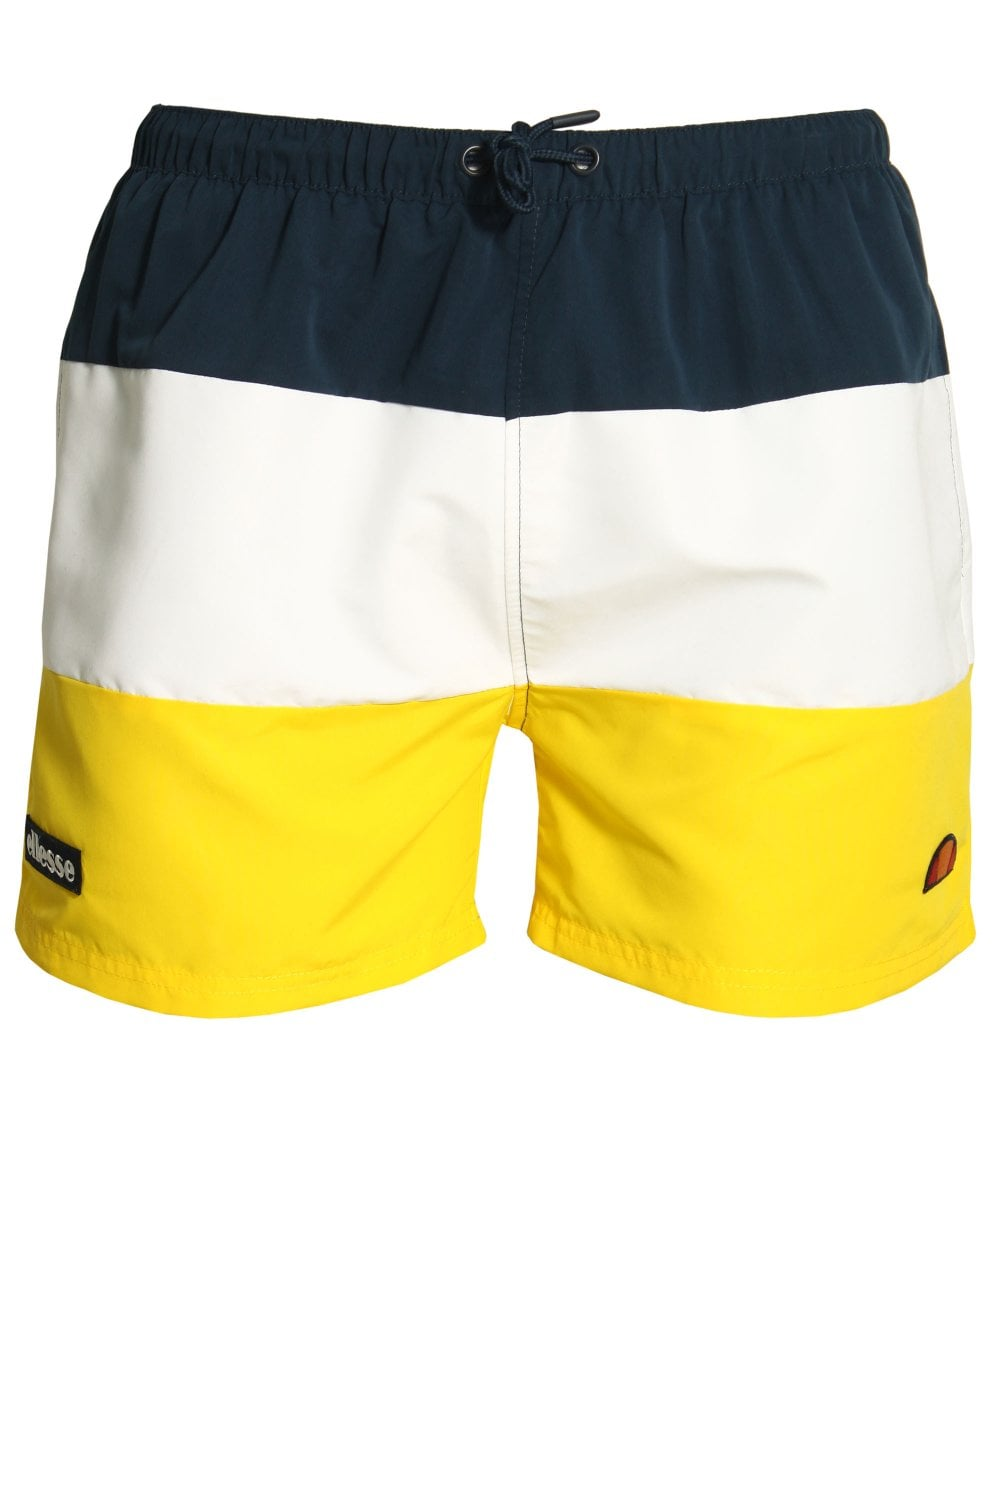 2319772107 Ellesse Cielo Swim Shorts Yellow | Shop Ellesse Mens Swimwear & Shorts